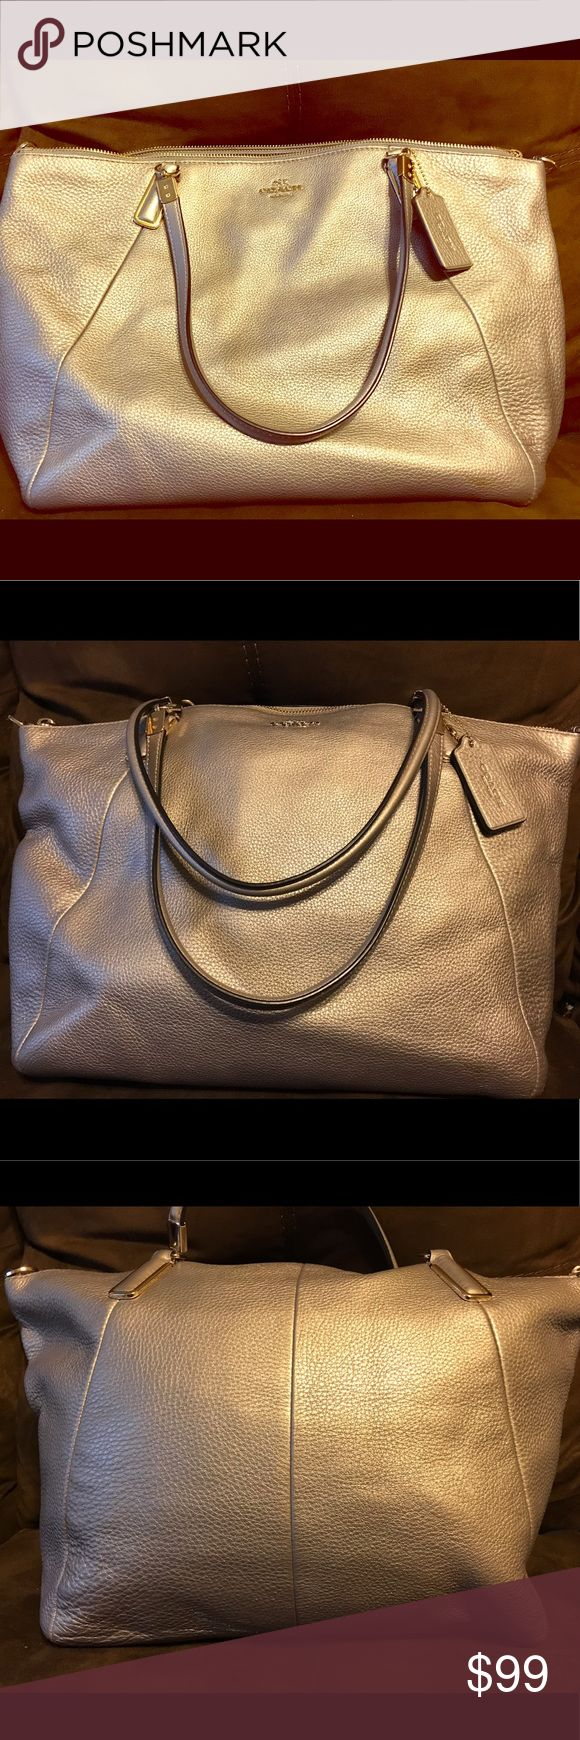 Metallic gold COACH shoulder bag Metallic gold COACH shoulder bag- comes with shoulder strap. Strap is still in tissue wrapping. Bag has been carried a few times- very gentle signs of use. Excellent condition!!! Coach Bags Shoulder Bags